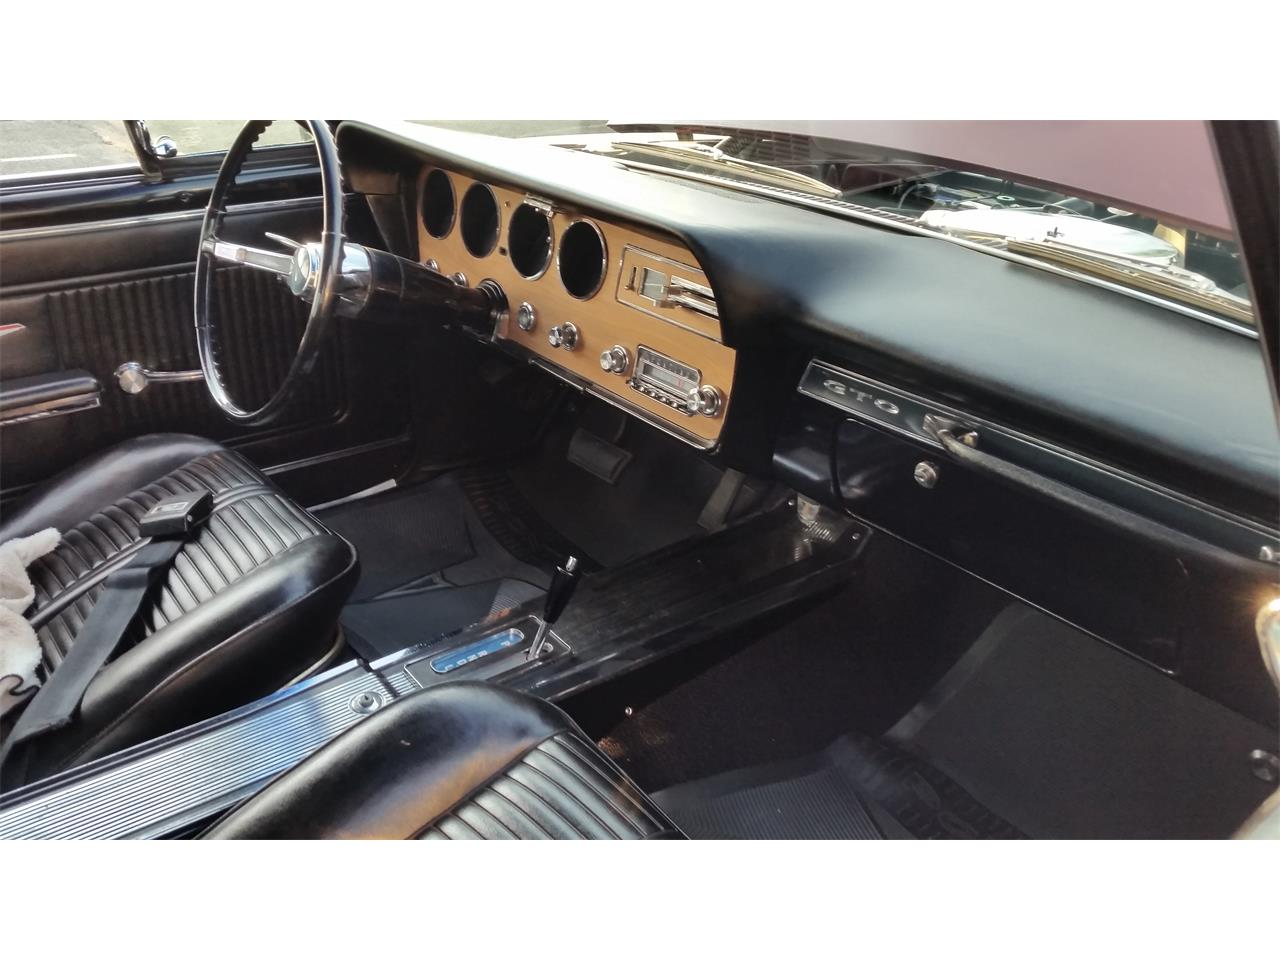 Large Picture of Classic 1966 Pontiac GTO - $40,000.00 Offered by a Private Seller - R1SH